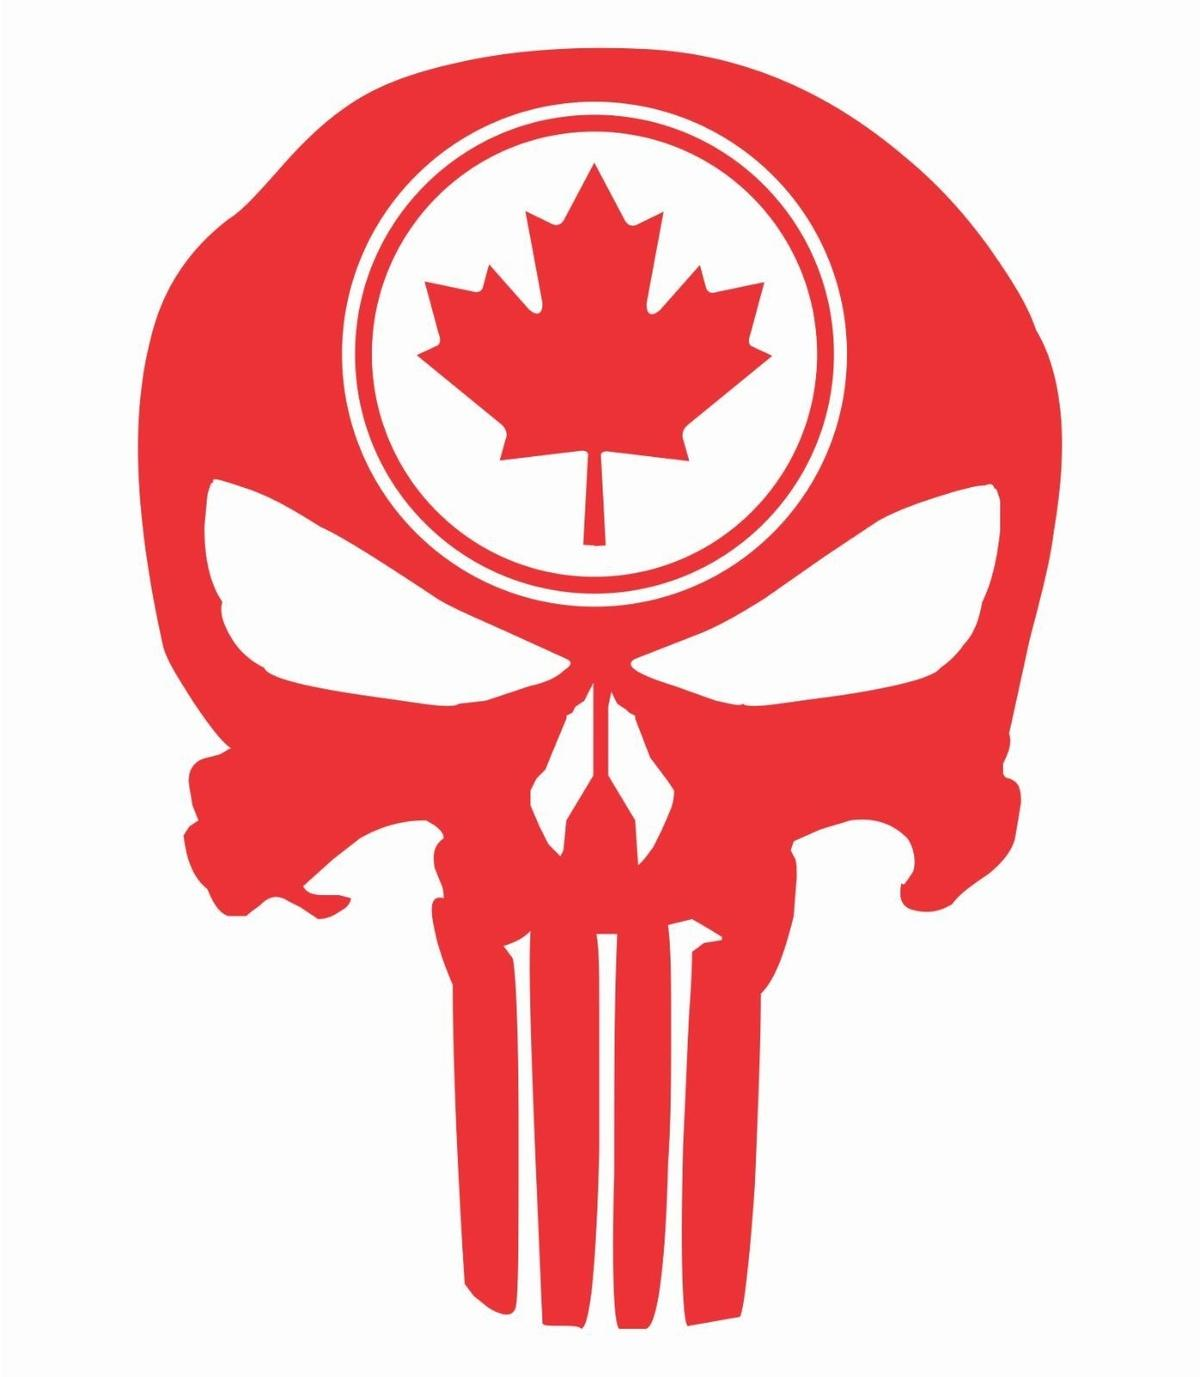 2019 car styling for tall punisher skull maple leaf vinyl decal sticker canadian flag truck from redchinatown 1 01 dhgate com